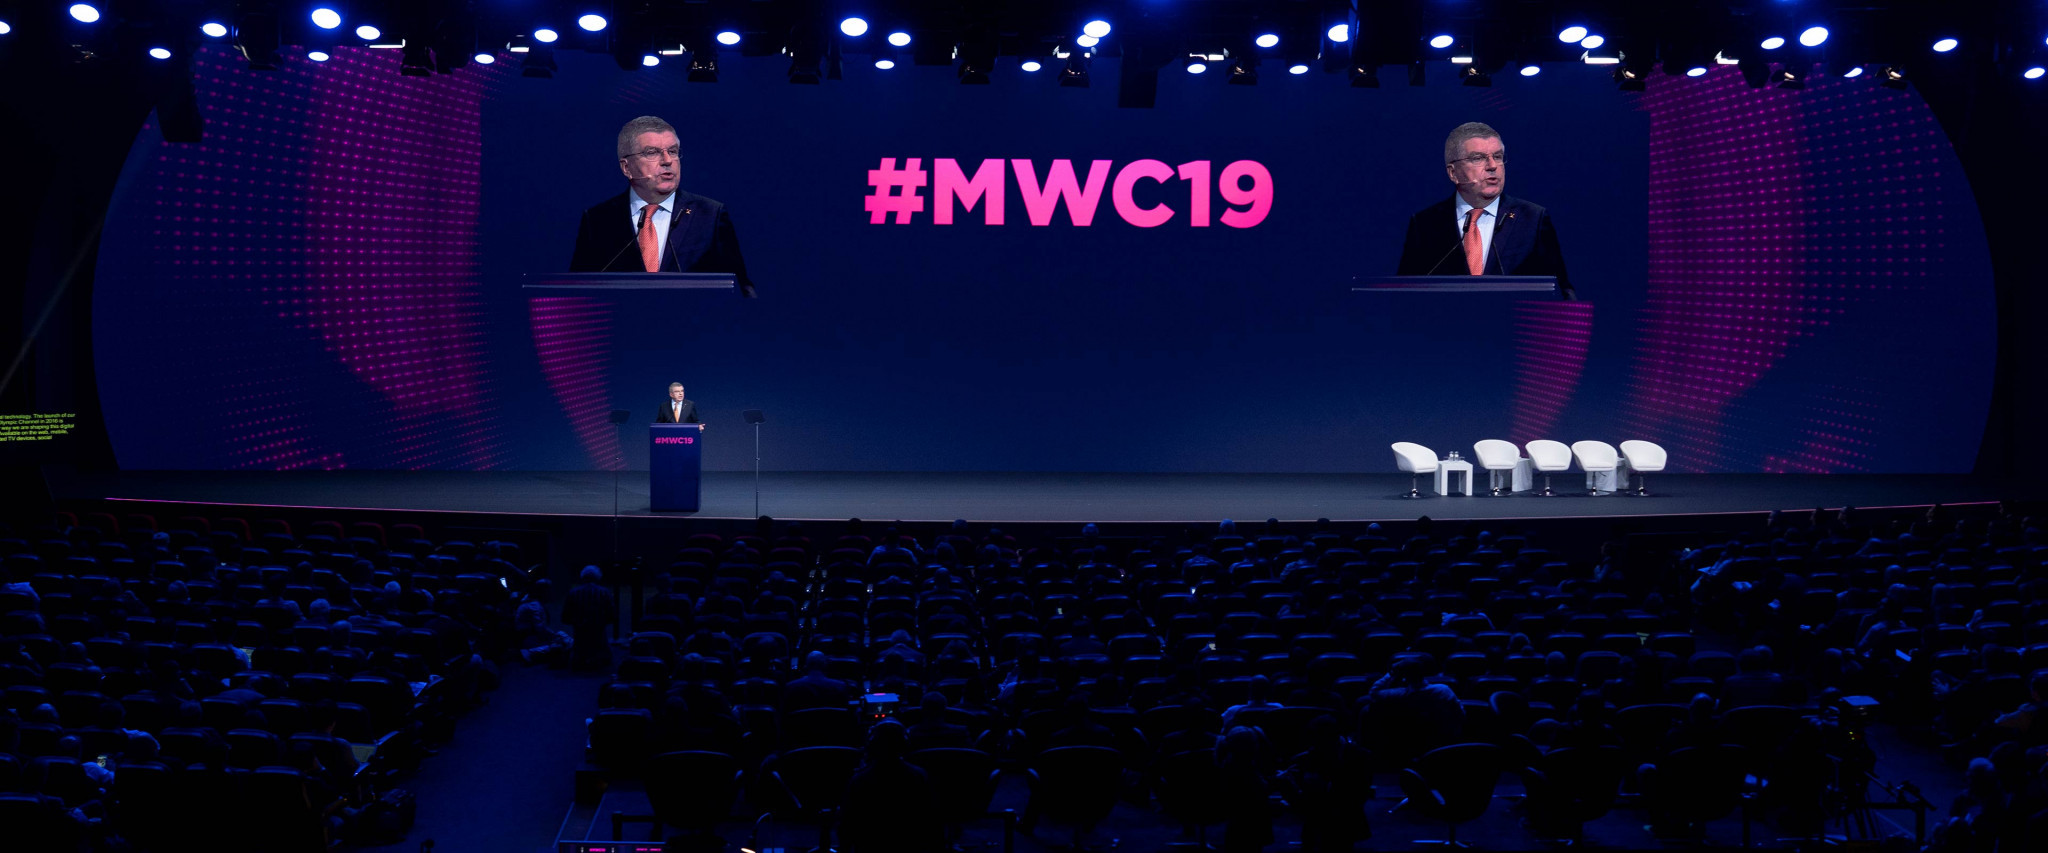 IOC President Bach has stressed the importance of 5G technology to the future of the Olympics ©IOC